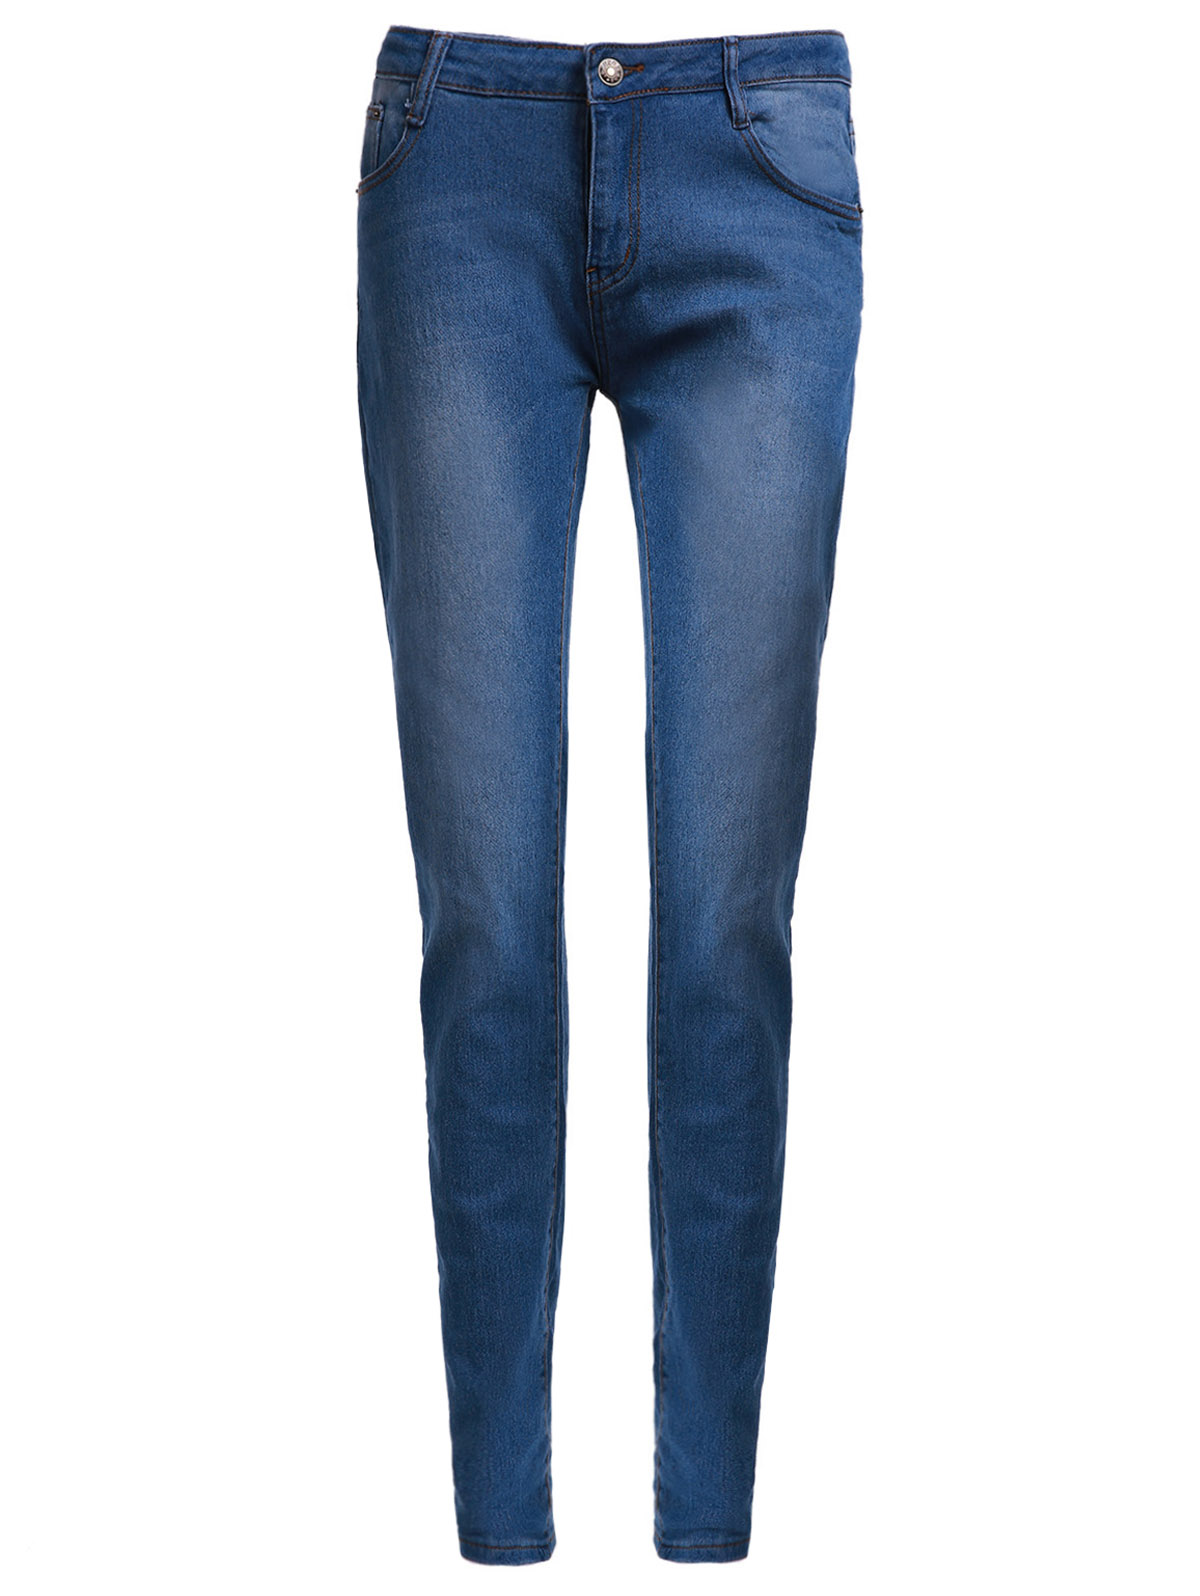 High-Waisted Zipper Embellished Stylish Slimming Pencil Jeans For Women